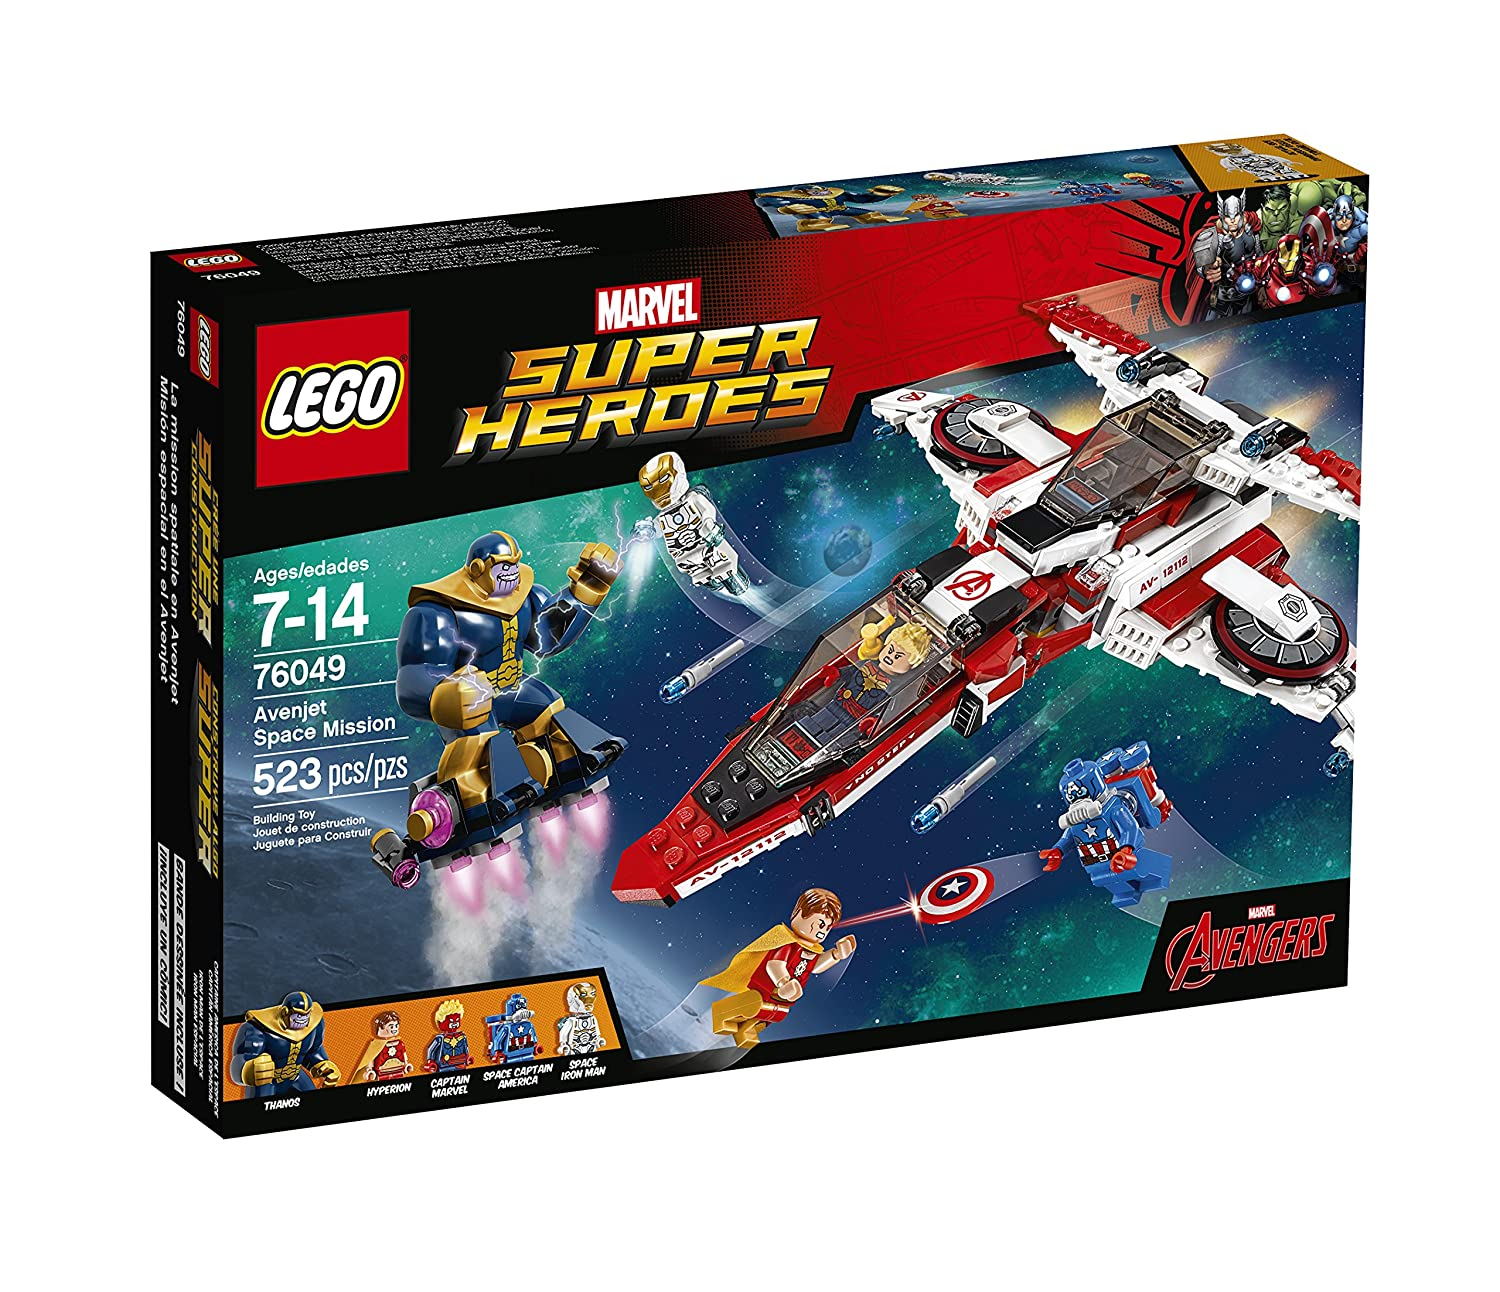 Top 9 Best LEGO Captain America Sets Reviews in 2019 8